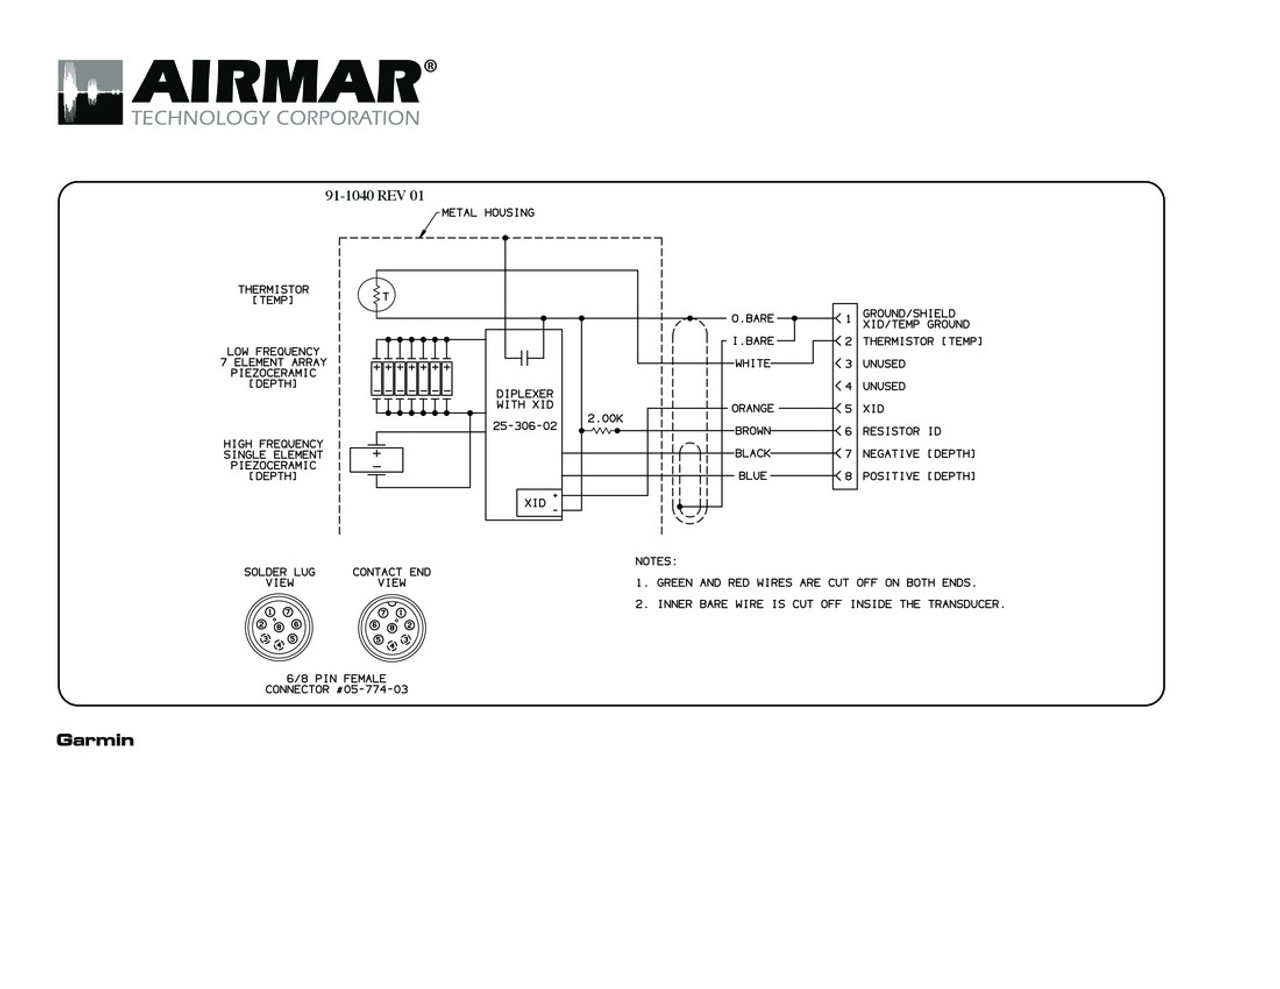 hds 8 wiring diagram wiring diagram